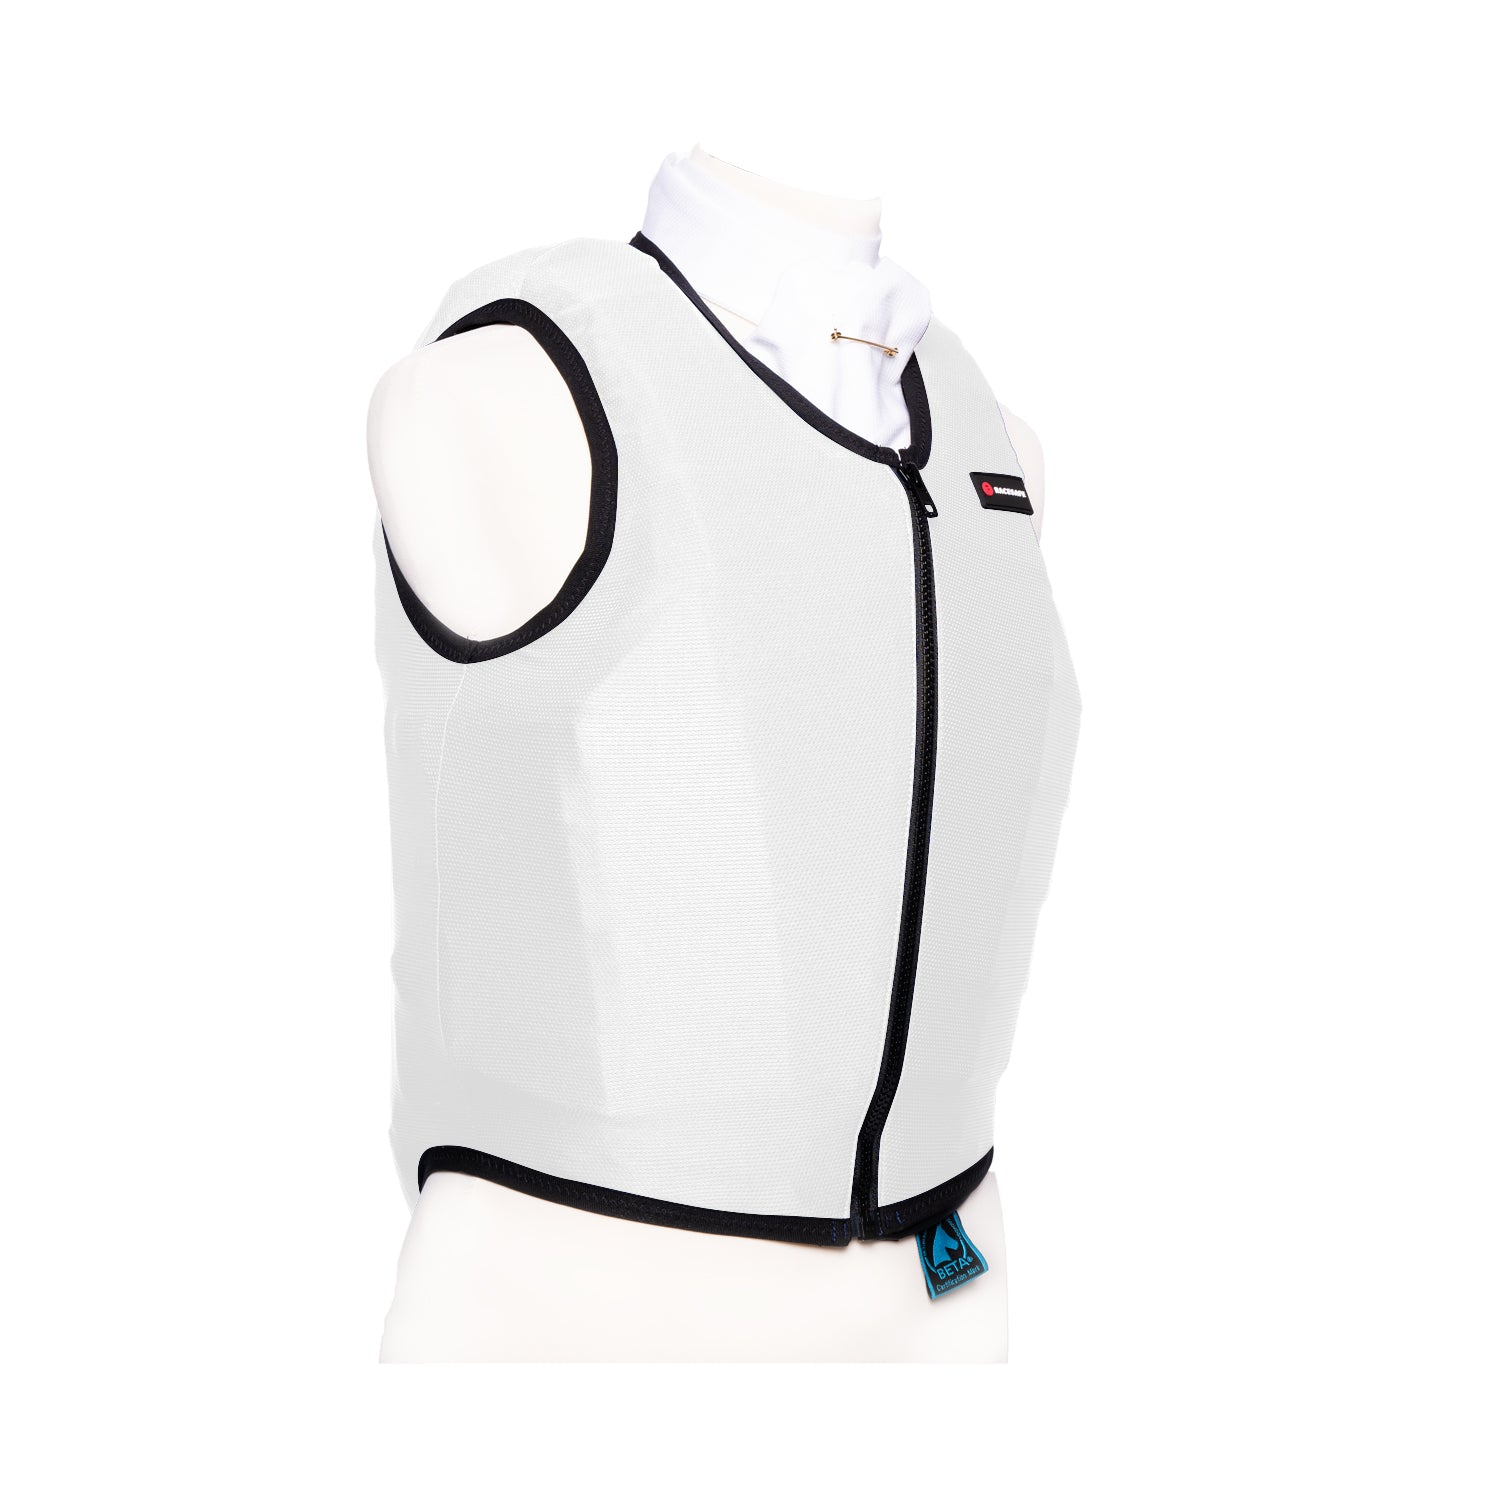 Body Protector Cover (Adults) - Racesafe